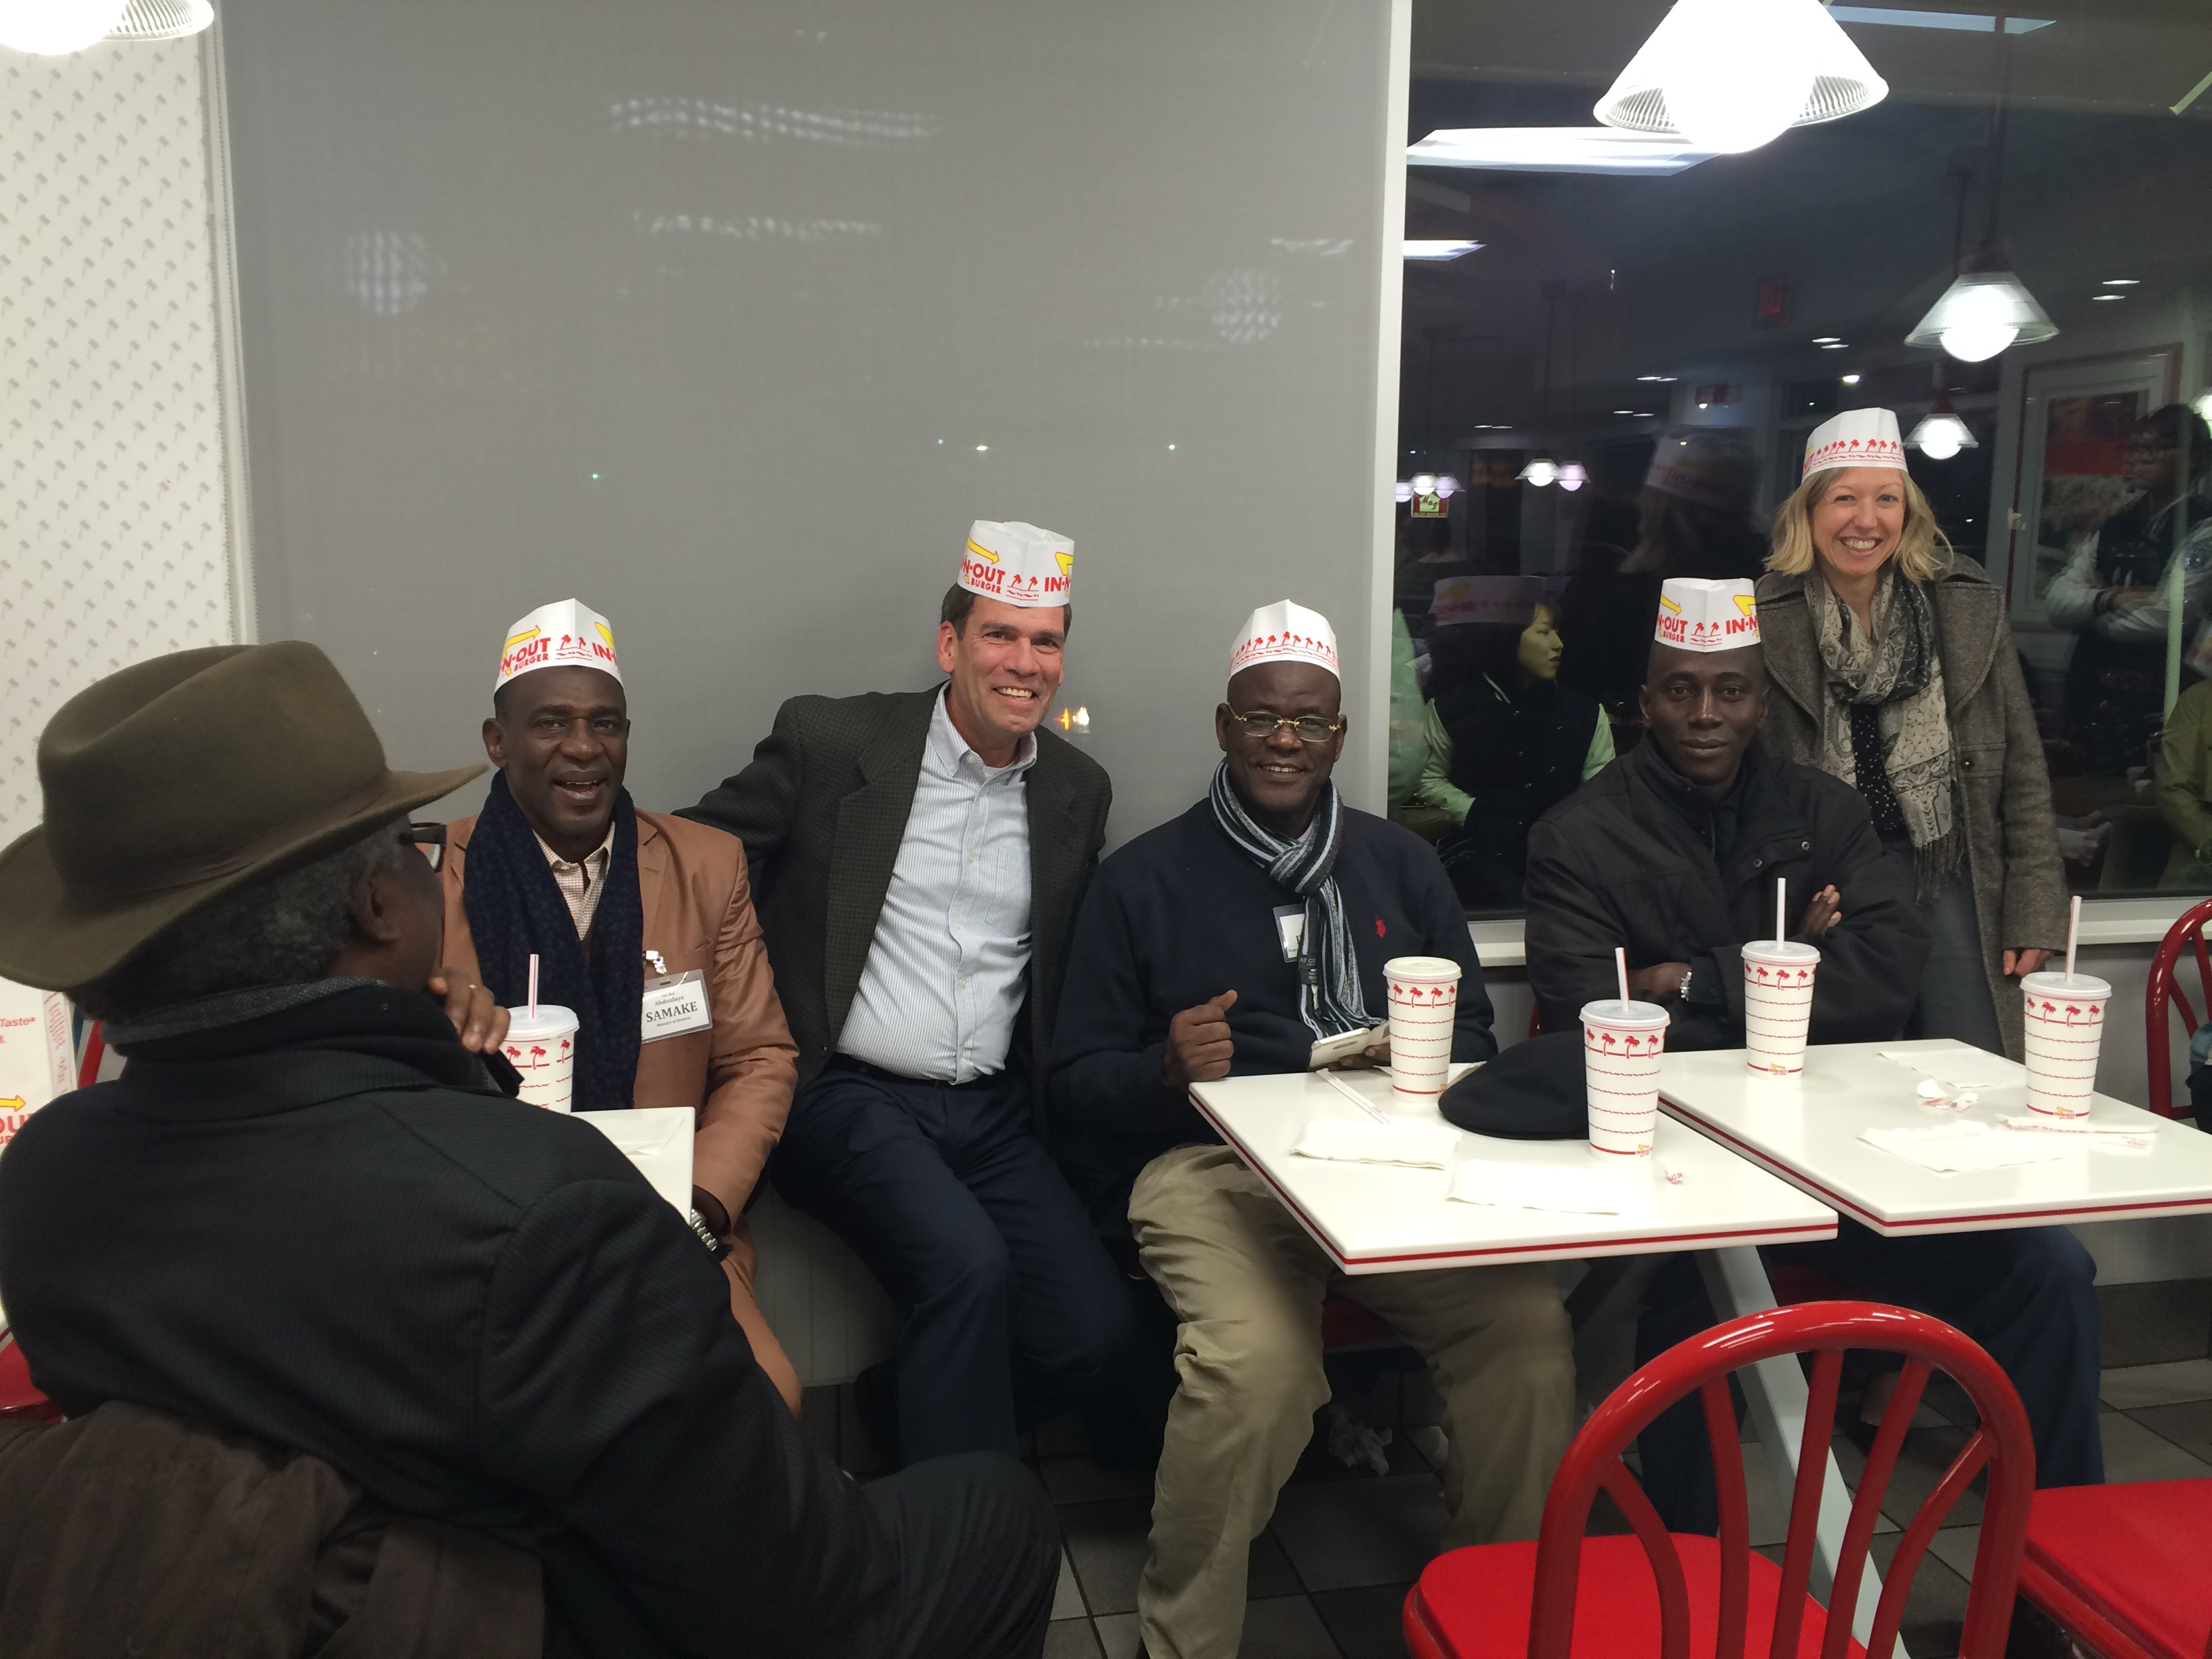 Mackay Hosting Malian Senior Officials to In-N-Out Burger in Monterey, California, January 2018